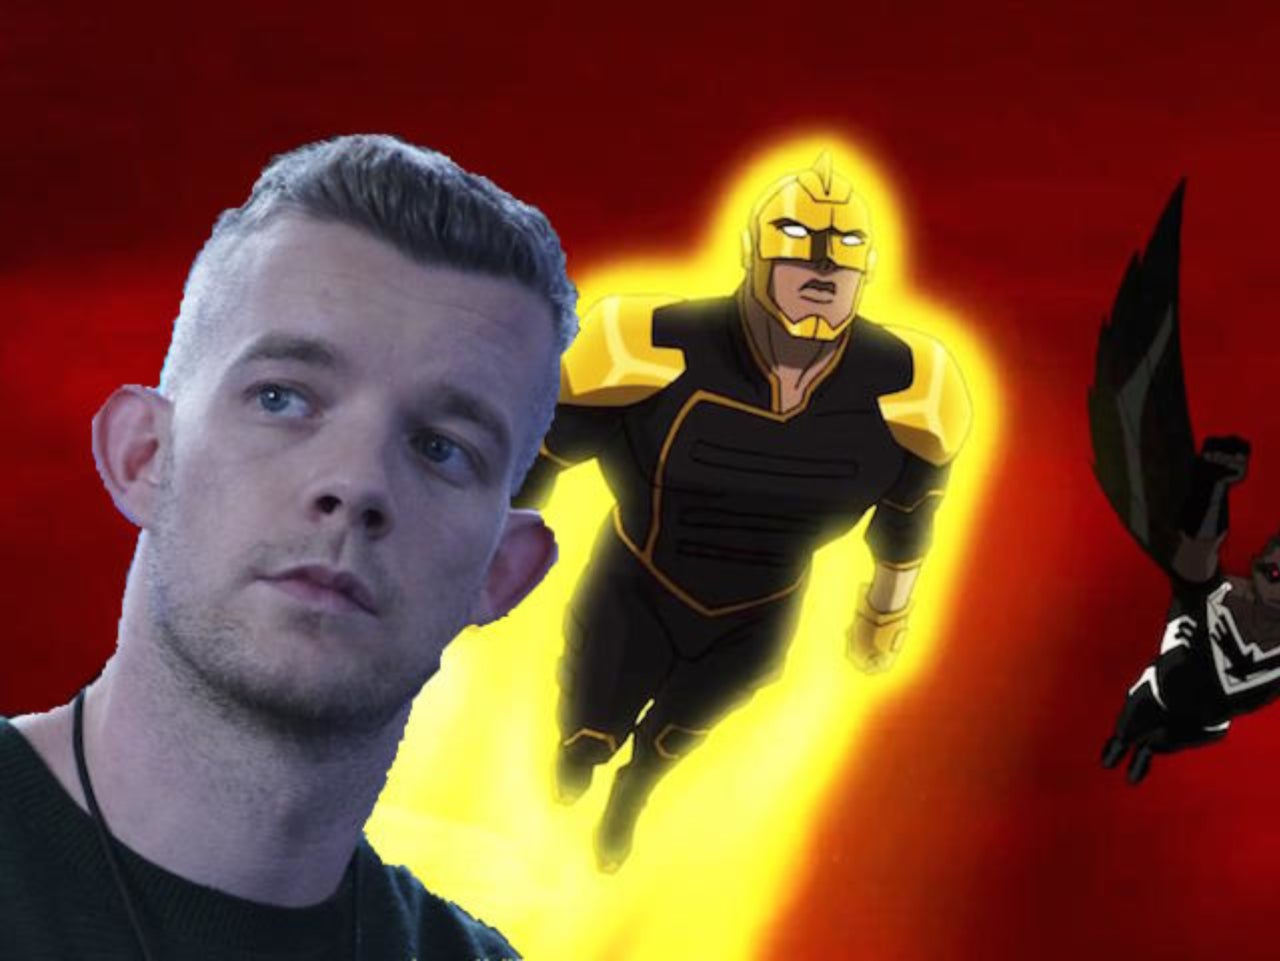 Arrowverse Casts Quantico Actor As The Ray | Screen Rant